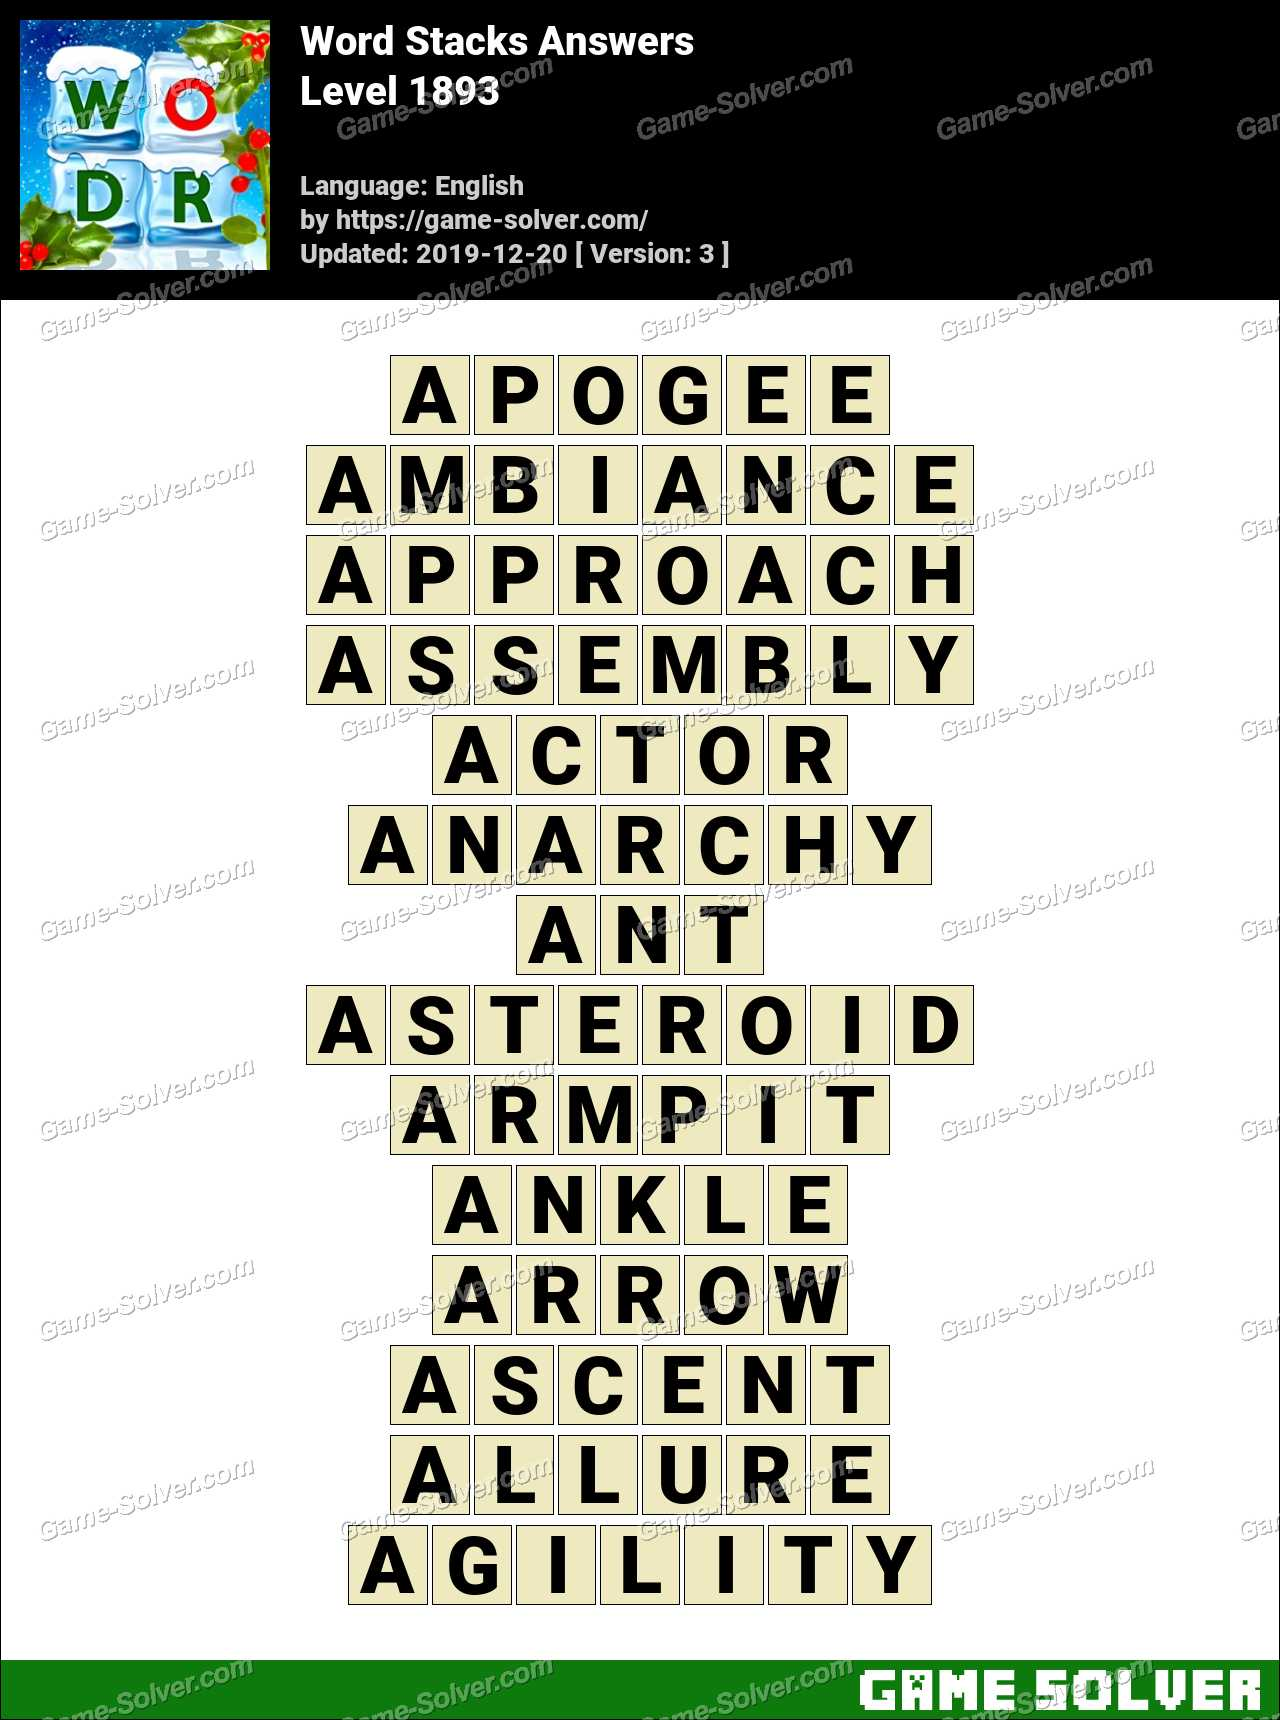 Word Stacks Level 1893 Answers